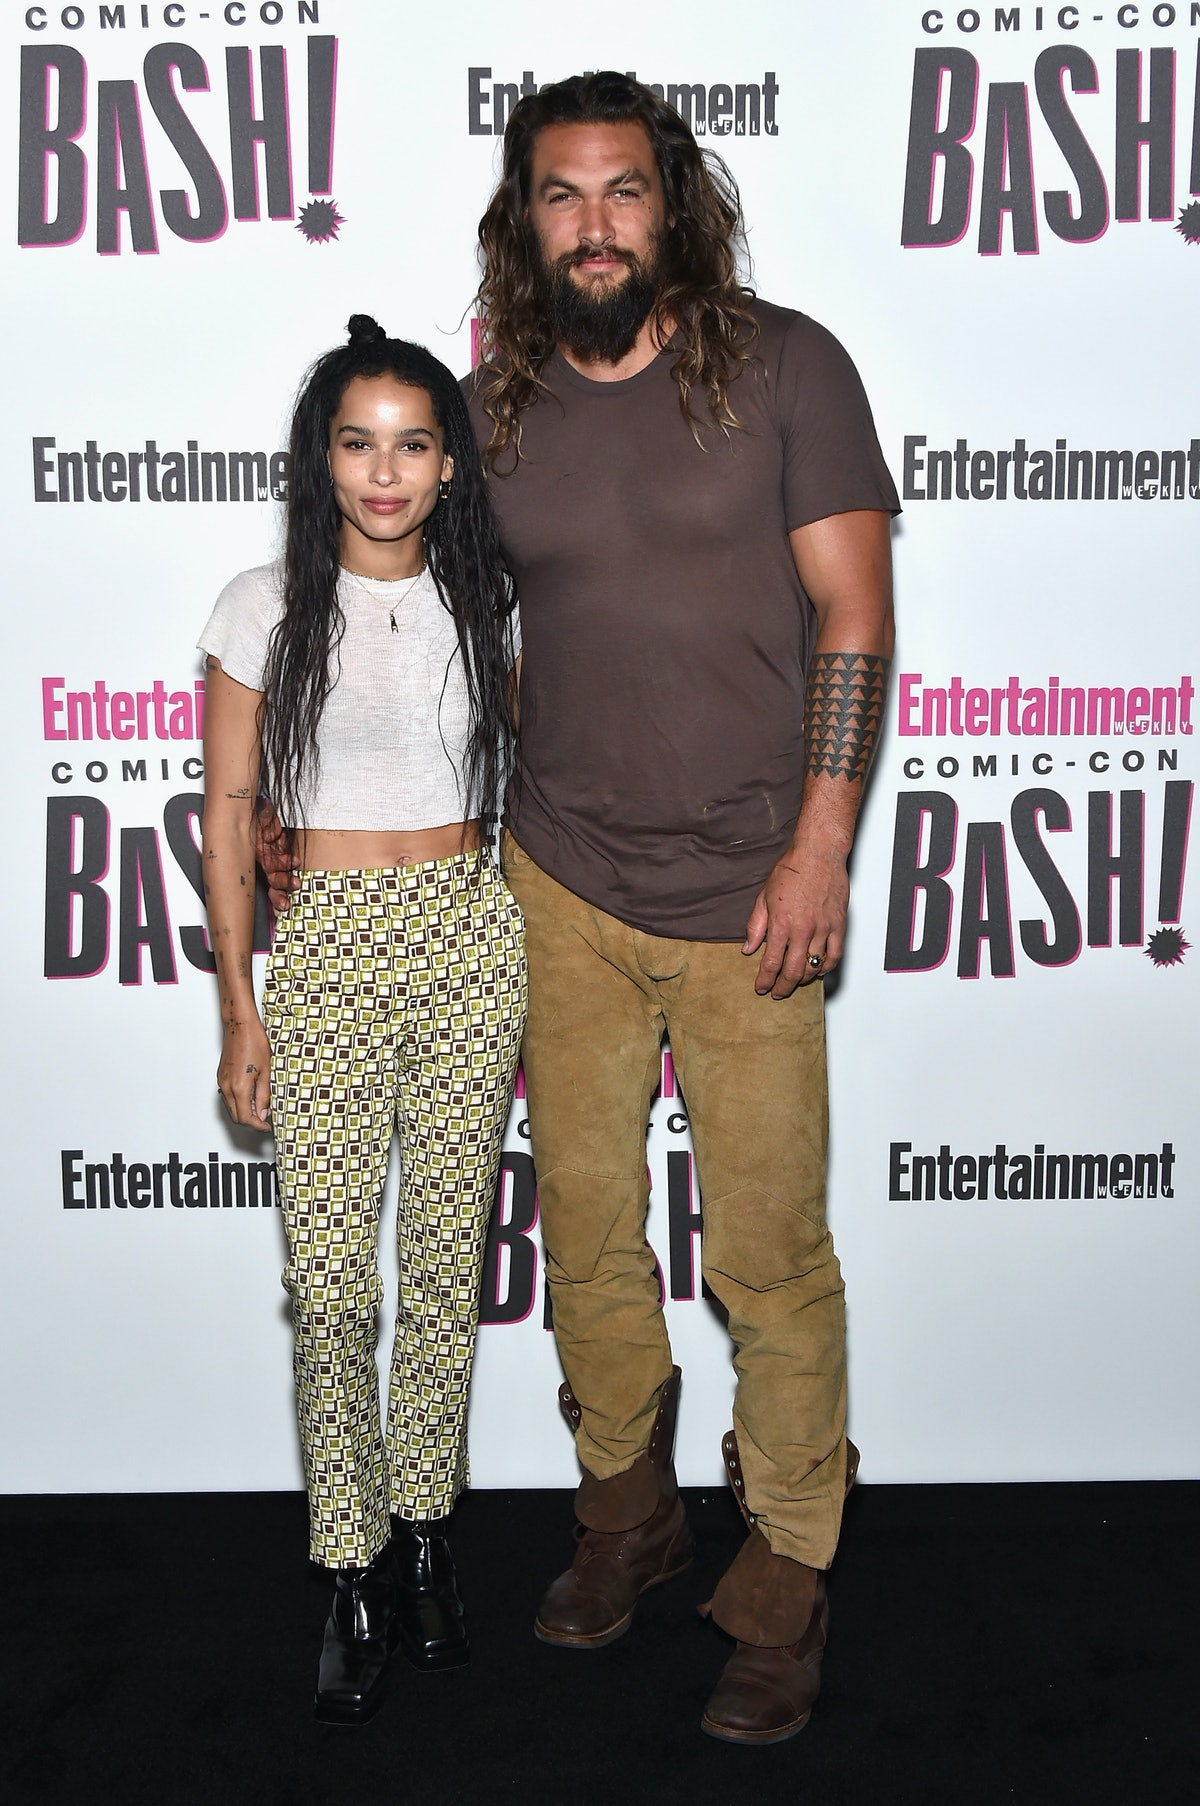 Entertainment Weekly Hosts Its Annual Comic-Con Party At FLOAT At The Hard Rock Hotel In San Diego I...